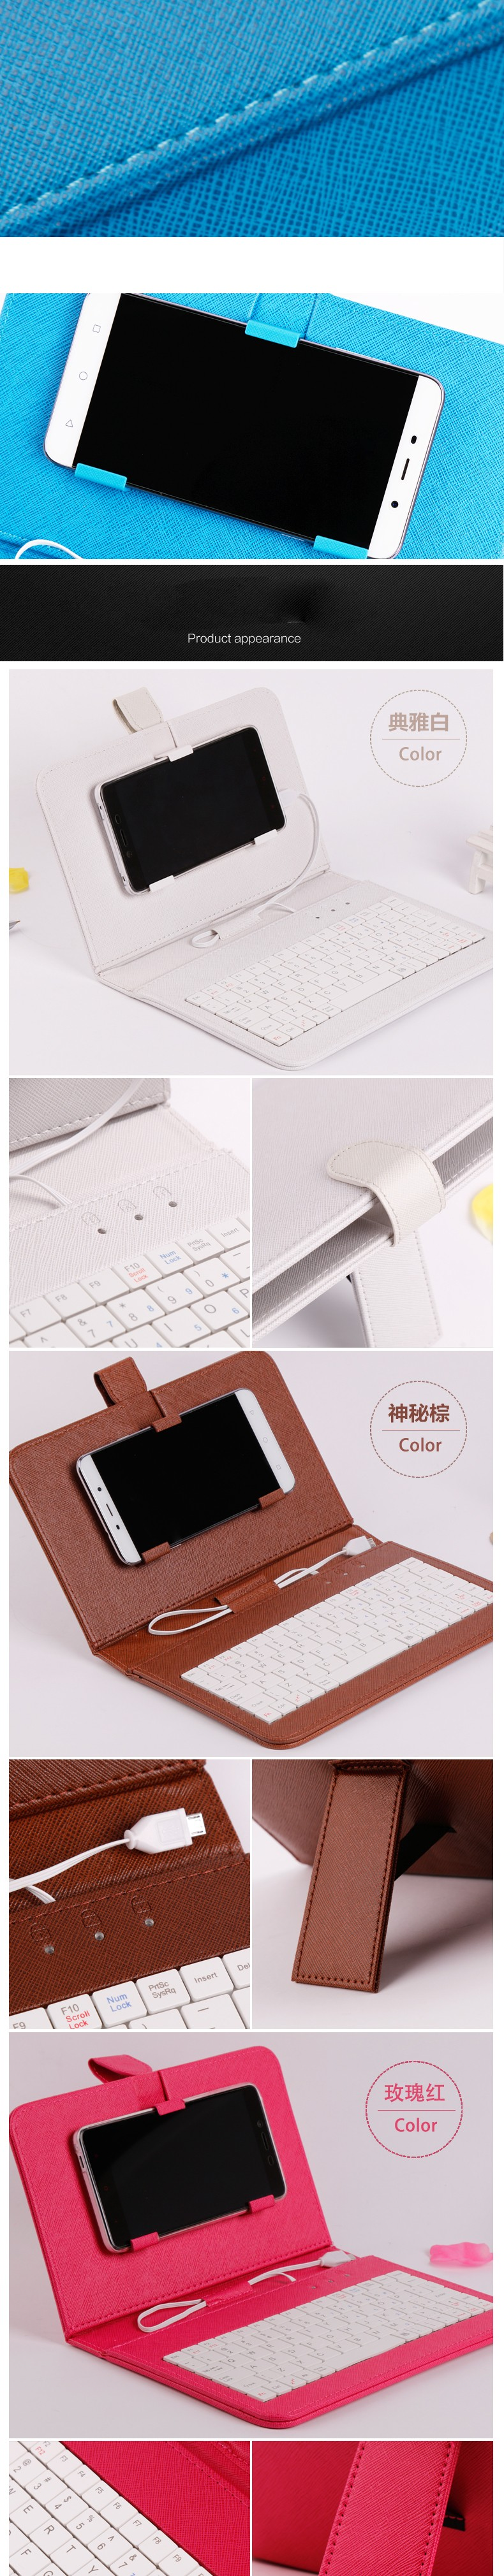 Ultra Slim Universal Wireless Bluetooth Keyboard For Mobile Phone Portable Keyboard Leather Case for iPhone 4S 5 5S SE 6 6S Plus